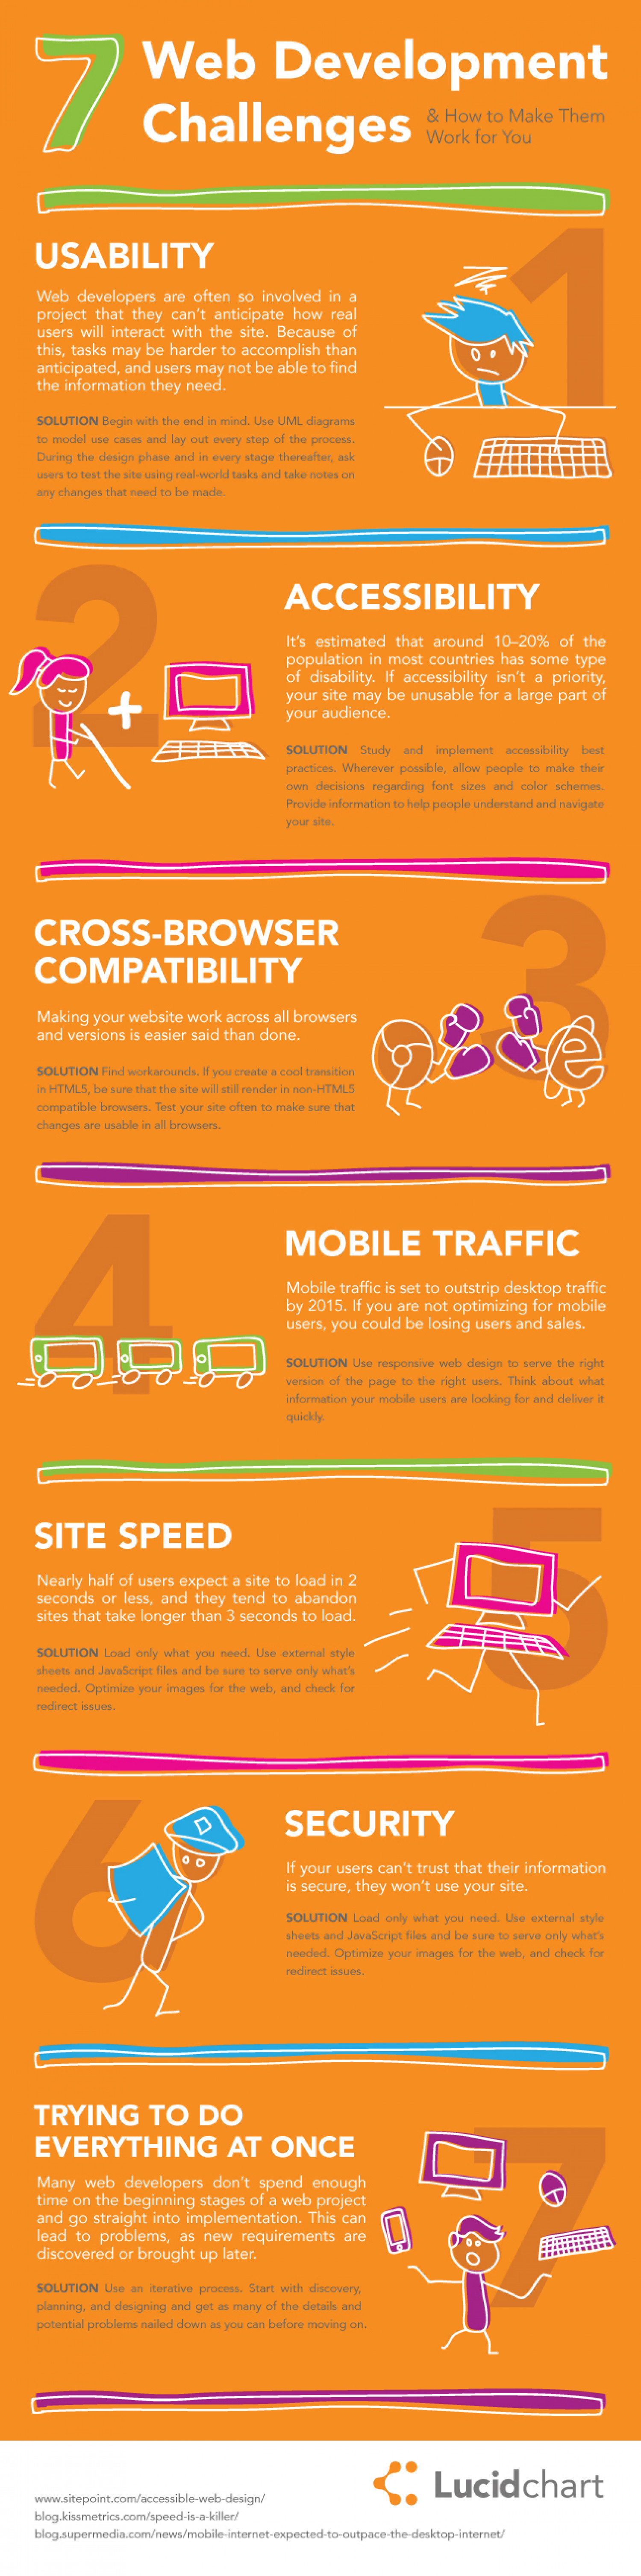 7 Web Development Challenges Infographic